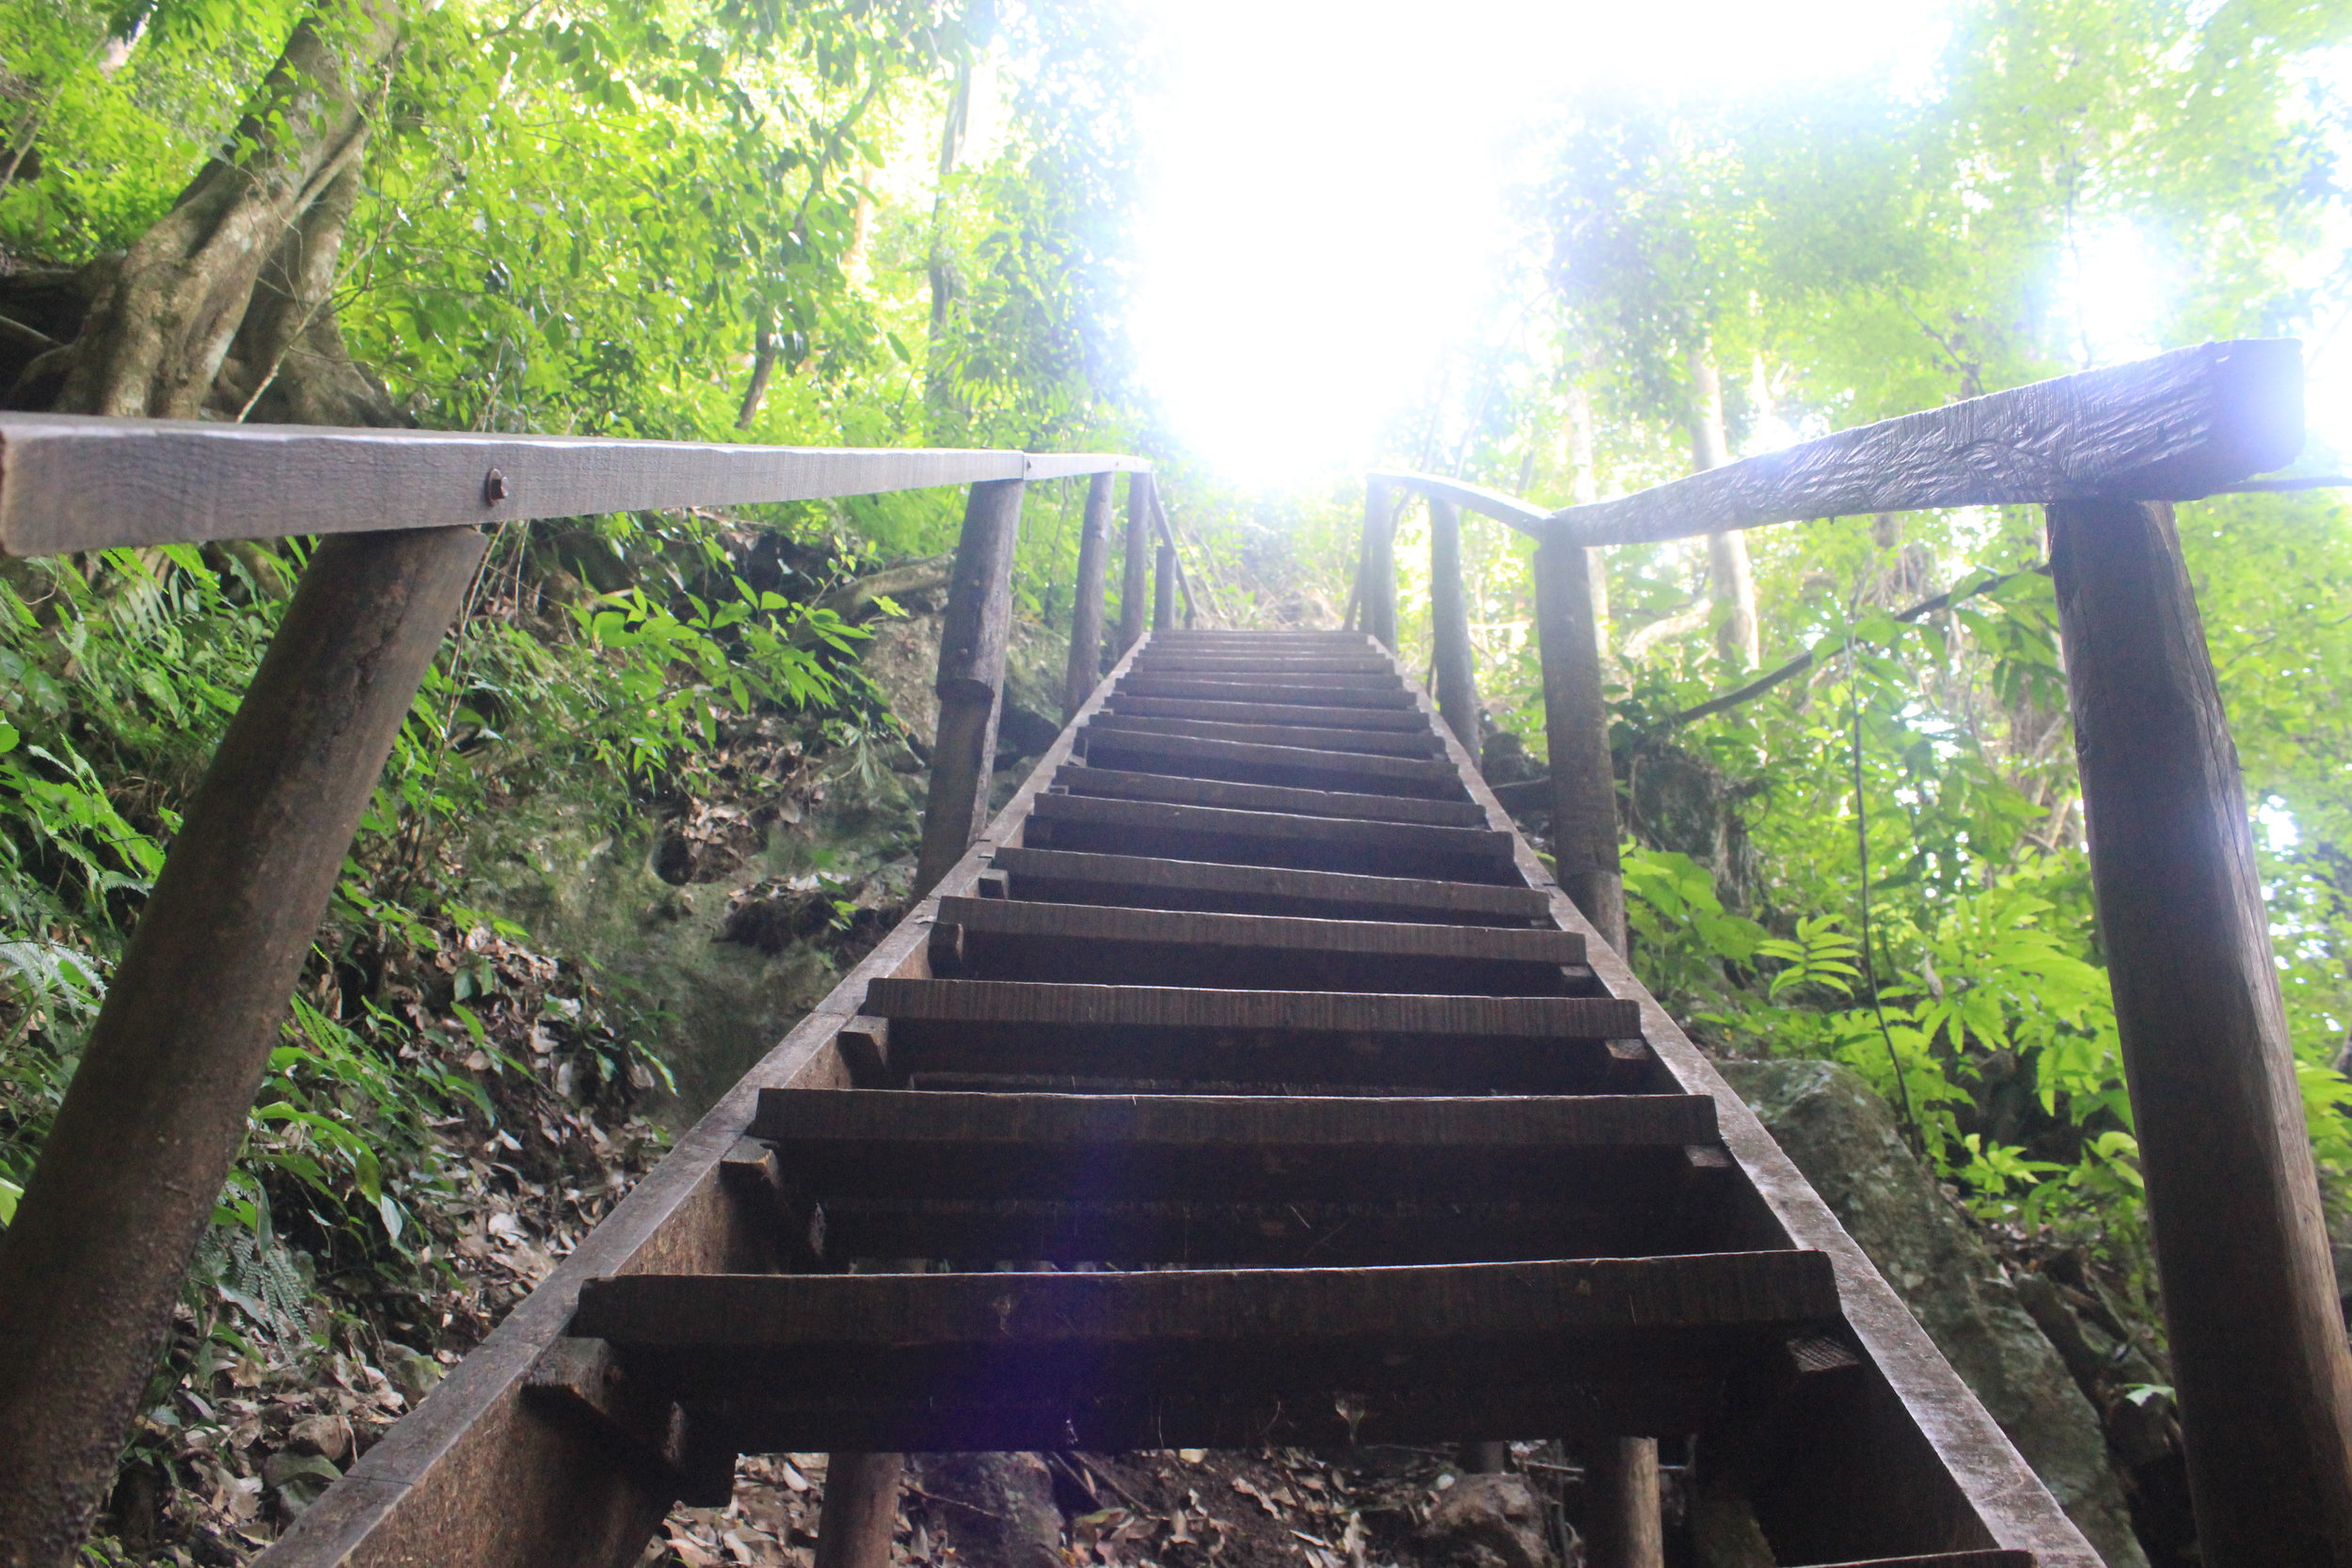 Stairways to heaven... or hell for our legs...